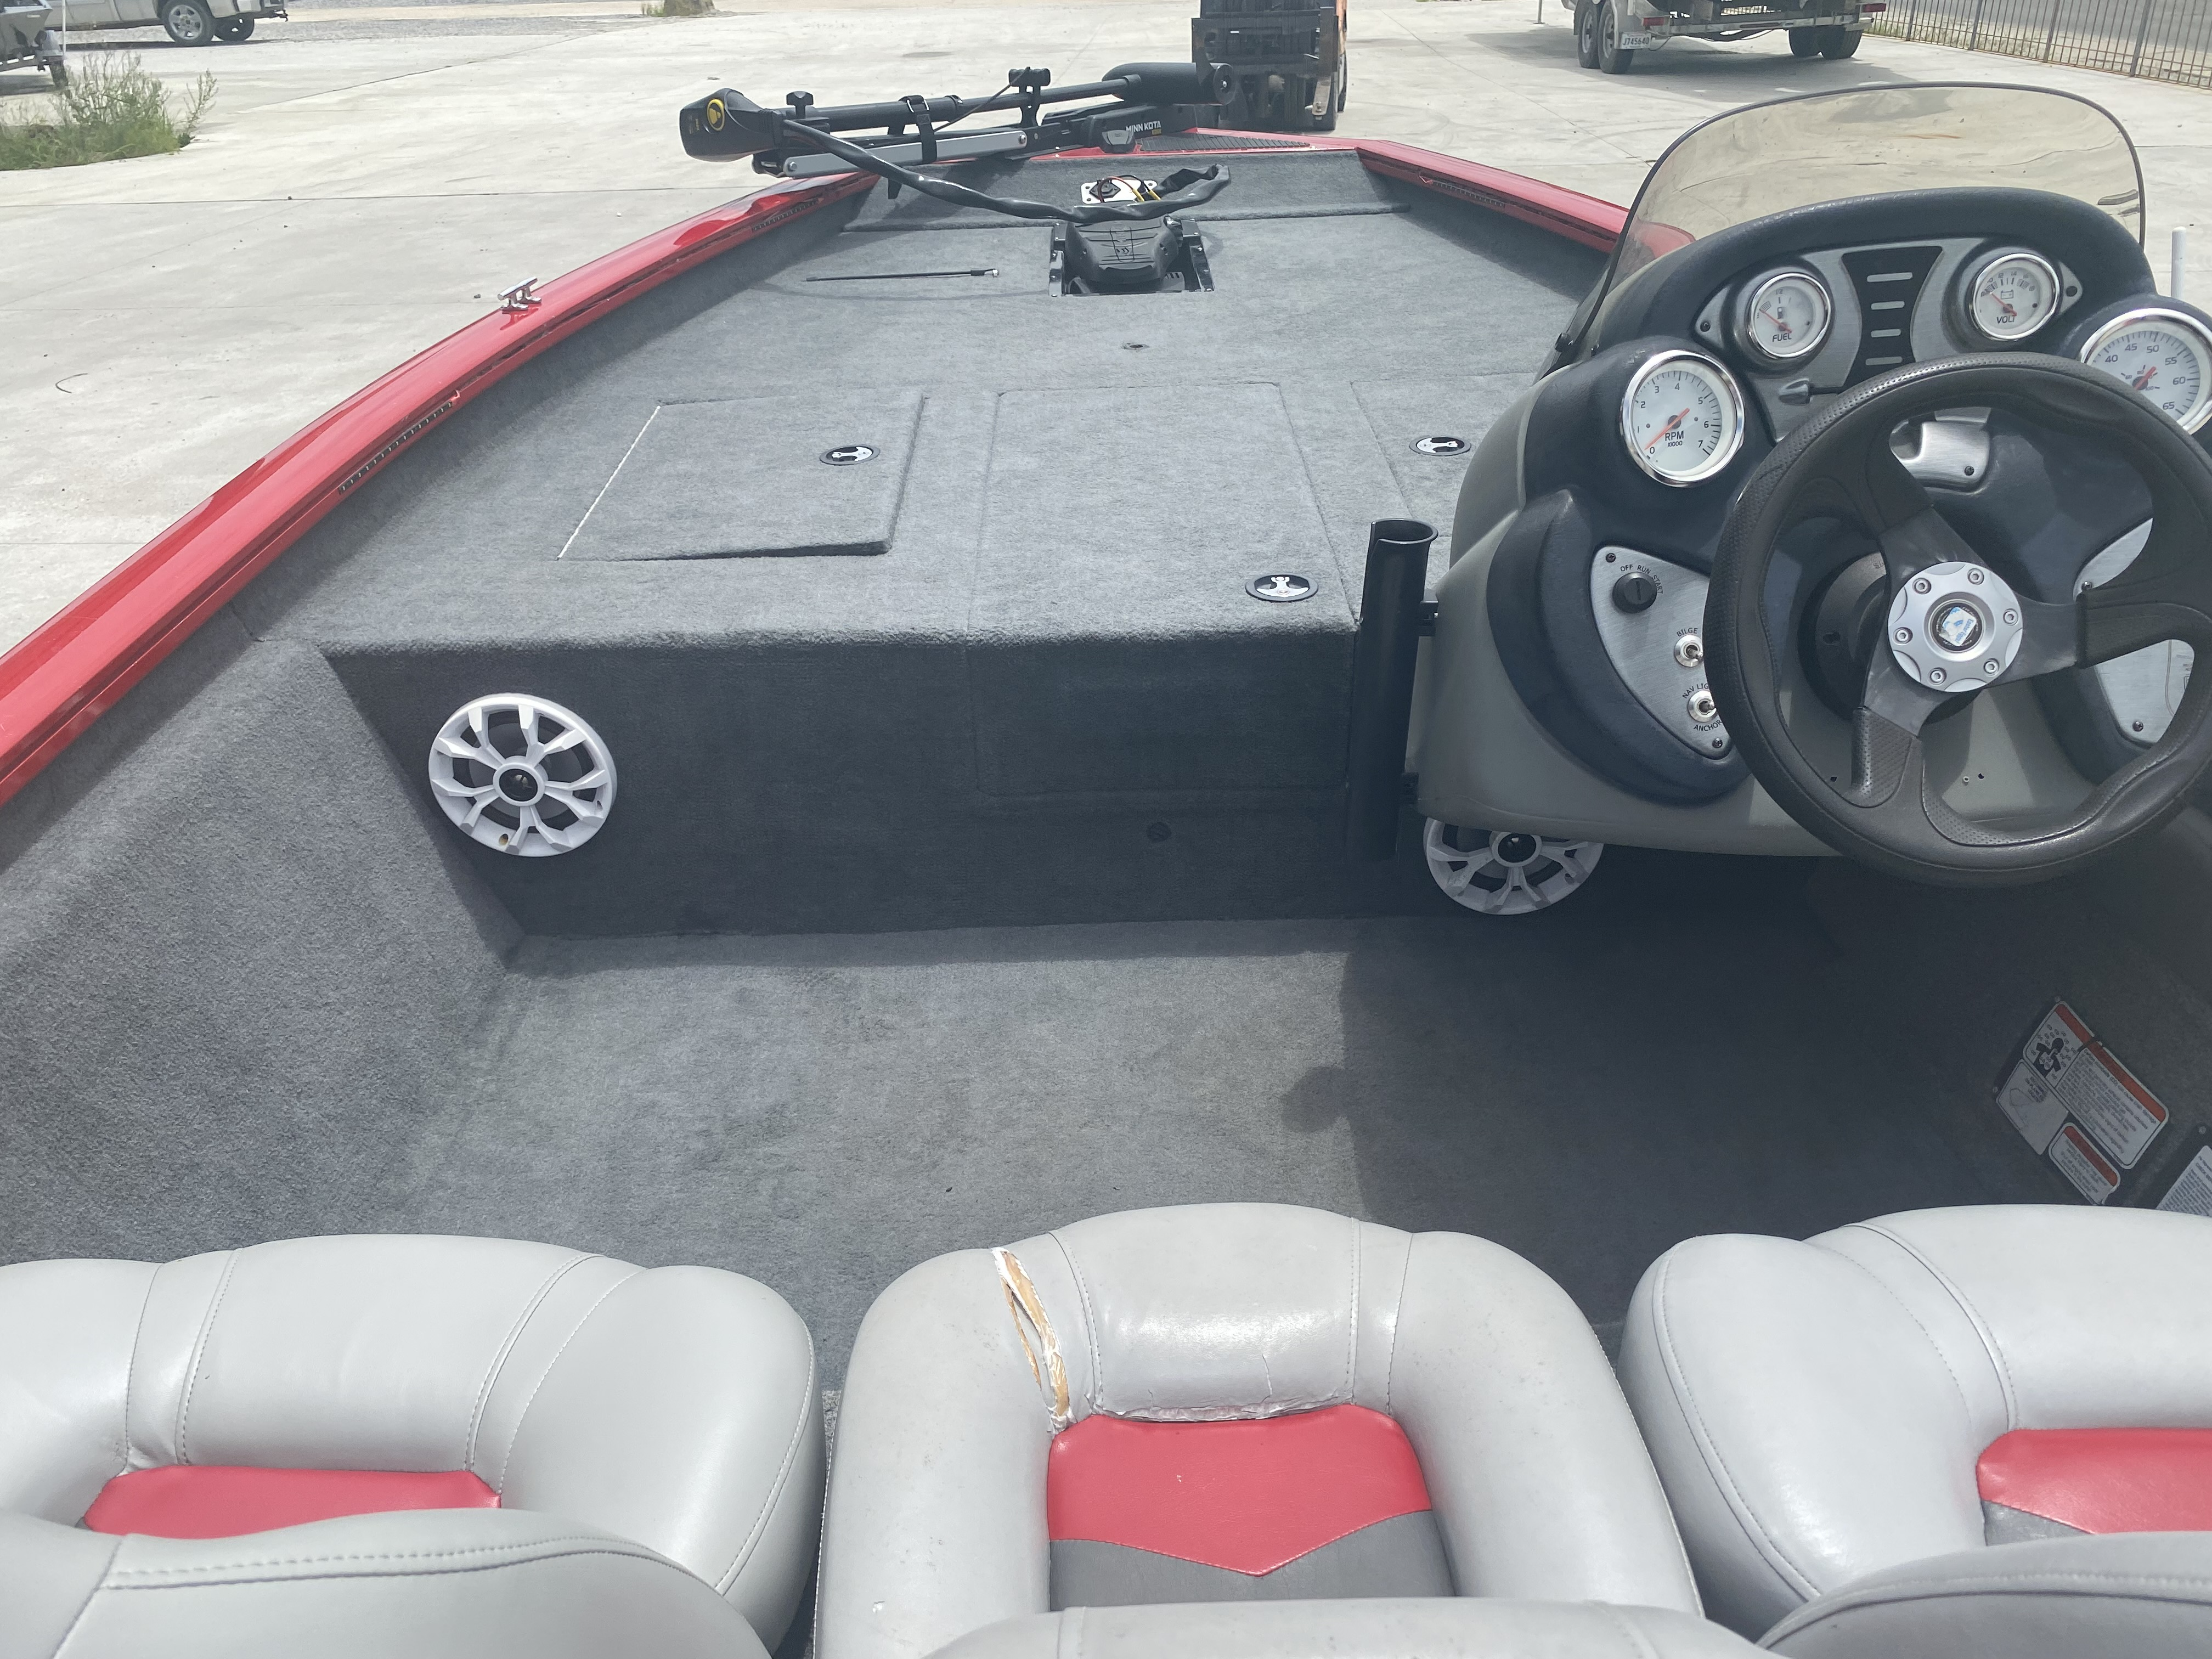 2016 Tracker Boats boat for sale, model of the boat is Pro Team 175 TXW & Image # 3 of 11